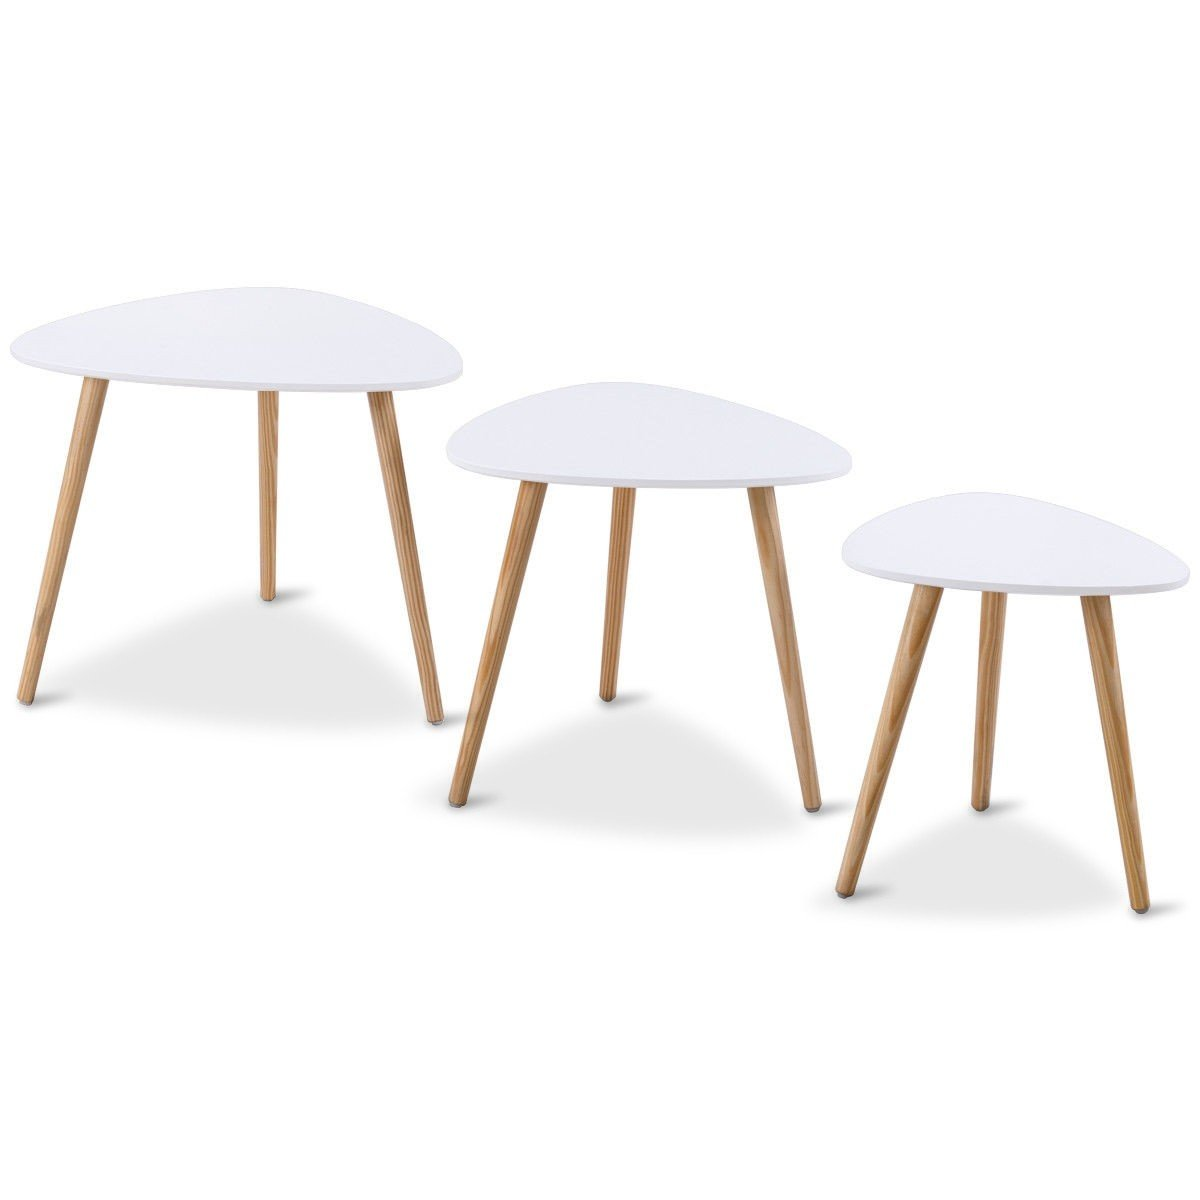 Set of 3 Wood Nesting Accent End Coffee Tea Table - by Choice Products by choice